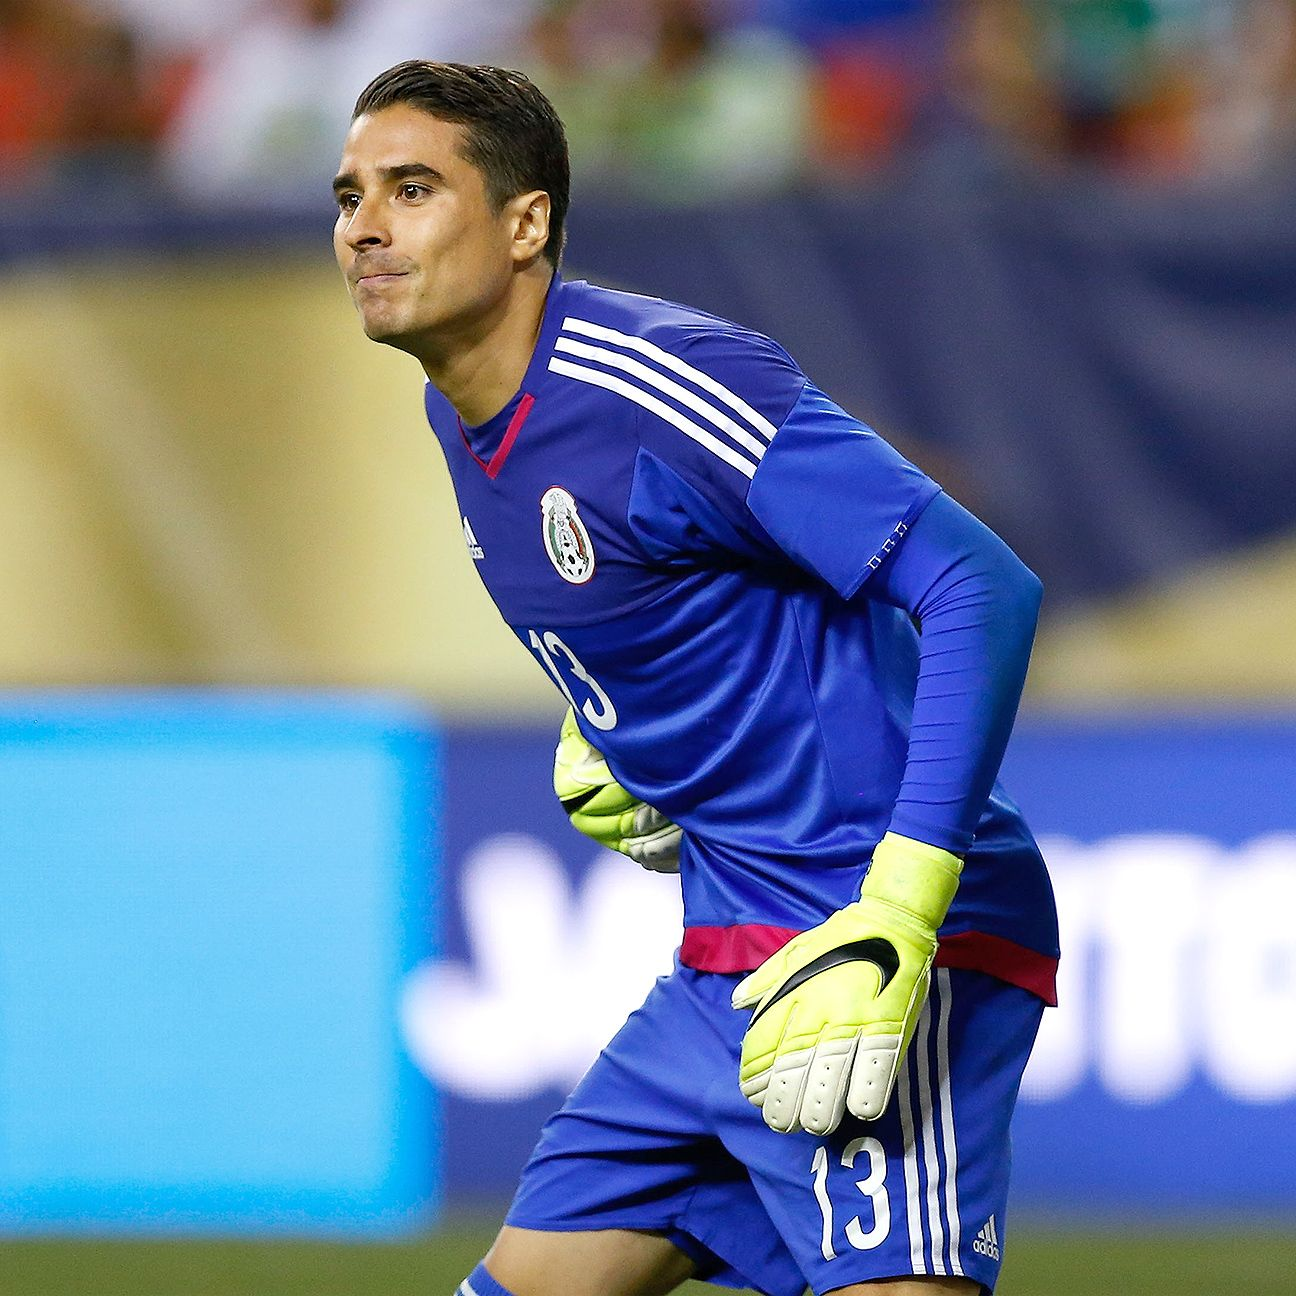 After starting in goal during Mexico's Gold Cup conquest in 2015, it remains to be seen if the Malaga stopper will be <i>El Tri's</i> No. 1 at the Copa America Centenario.